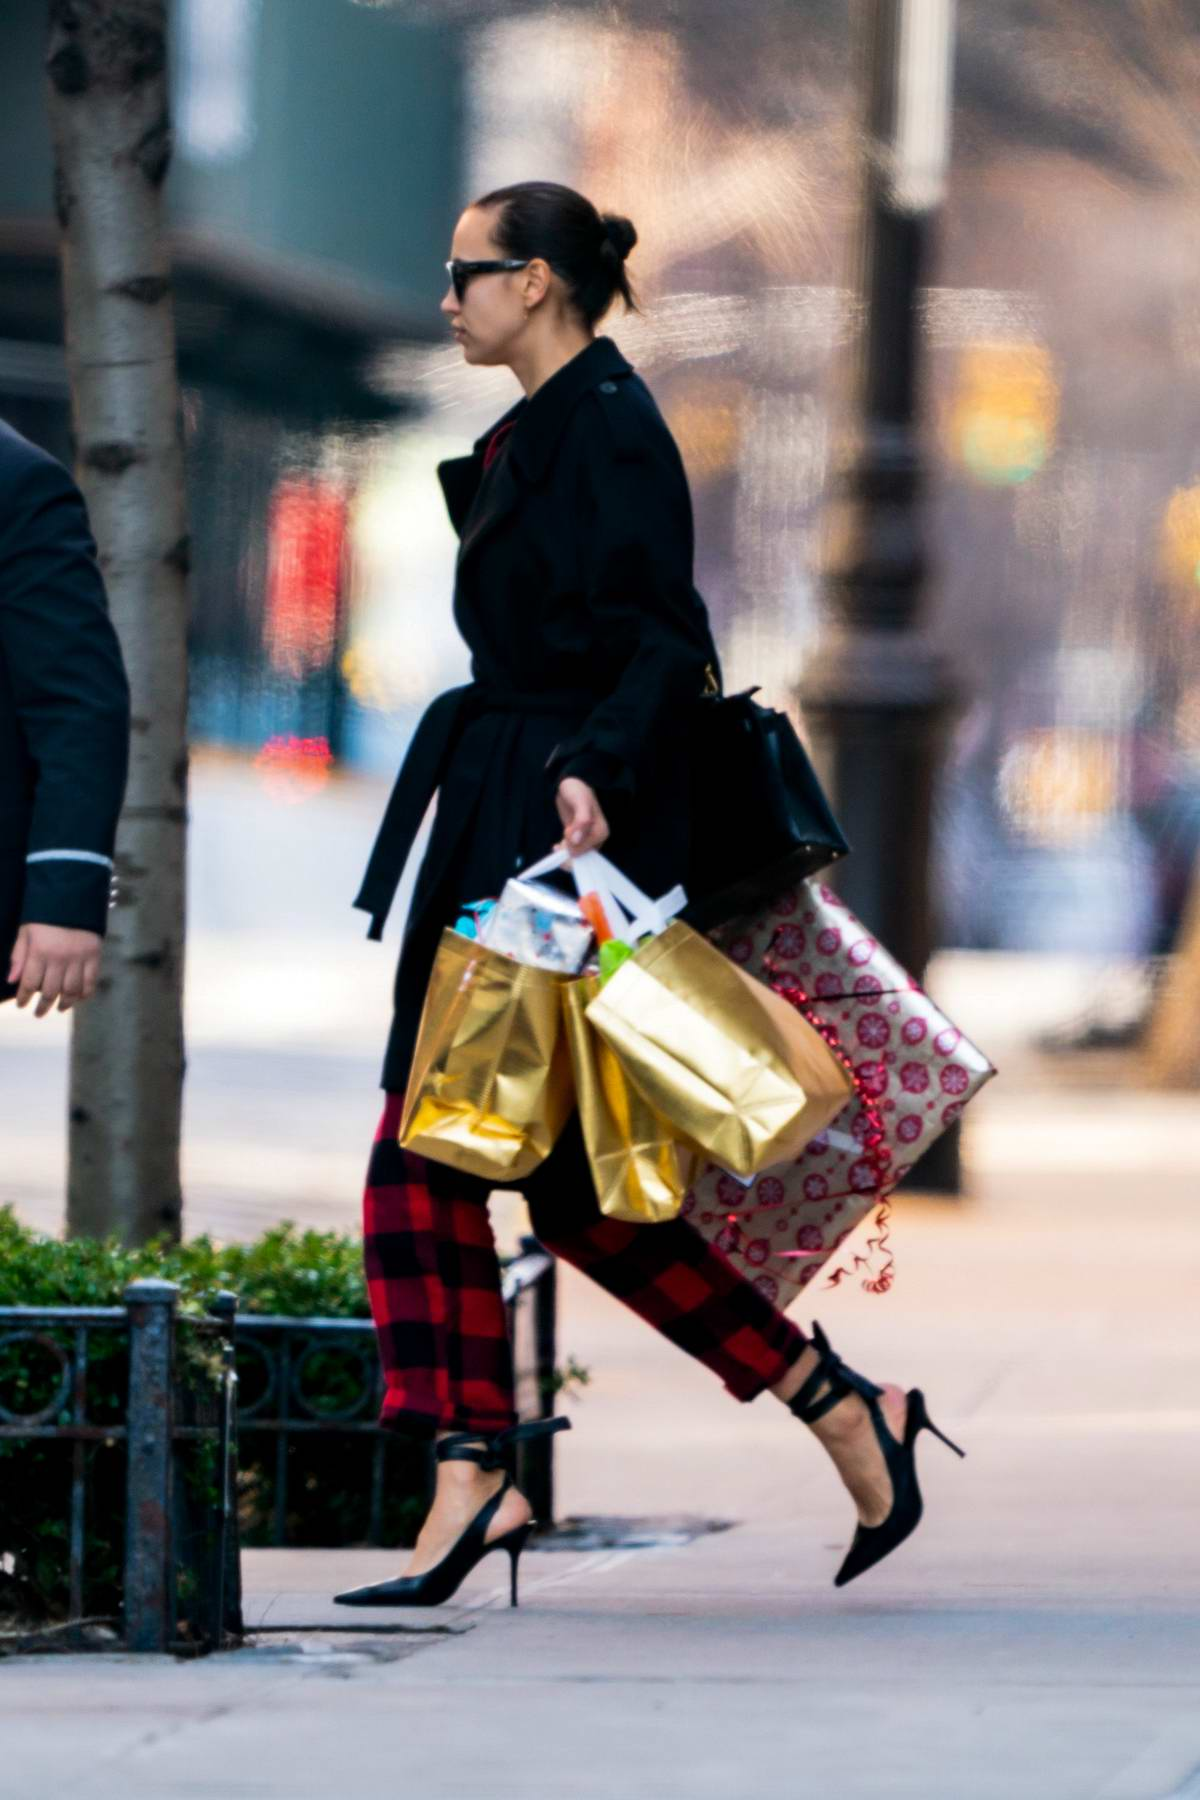 Irina Shayk looks stylish as she steps out on Christmas Day with bags of present in New York City